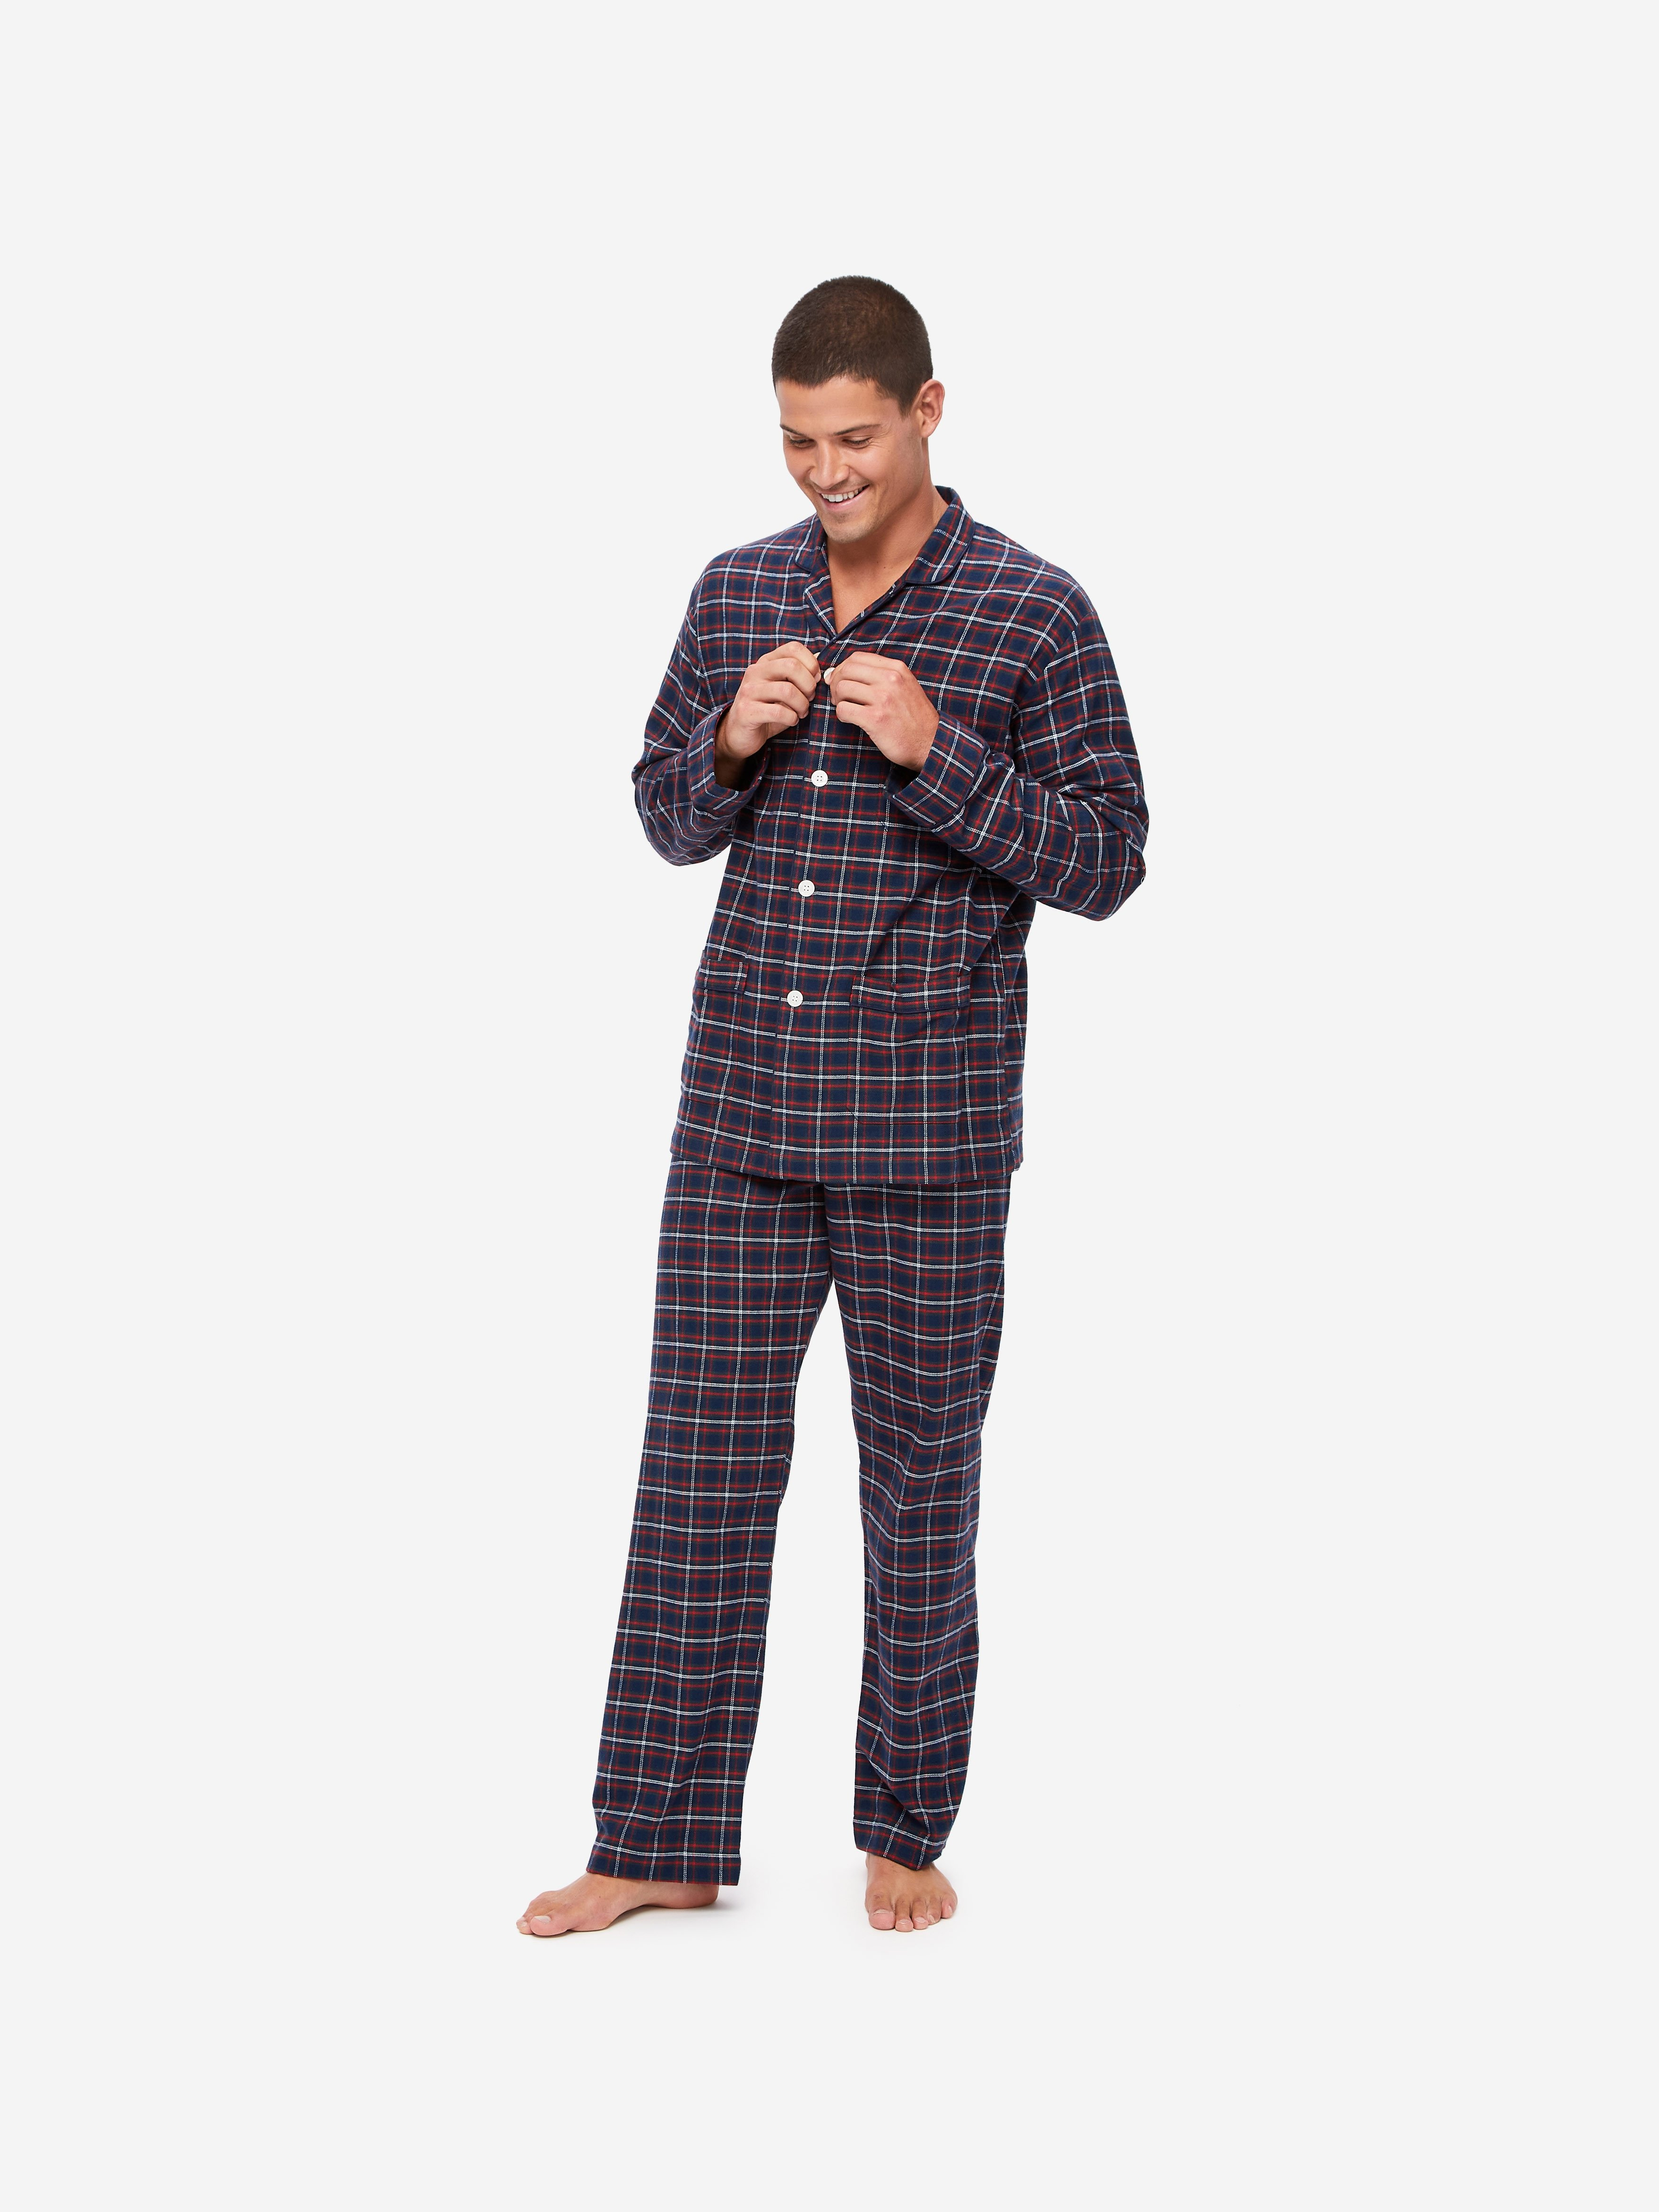 Men's Classic Fit Piped Pyjamas Kelburn 17 Brushed Cotton Check Multi